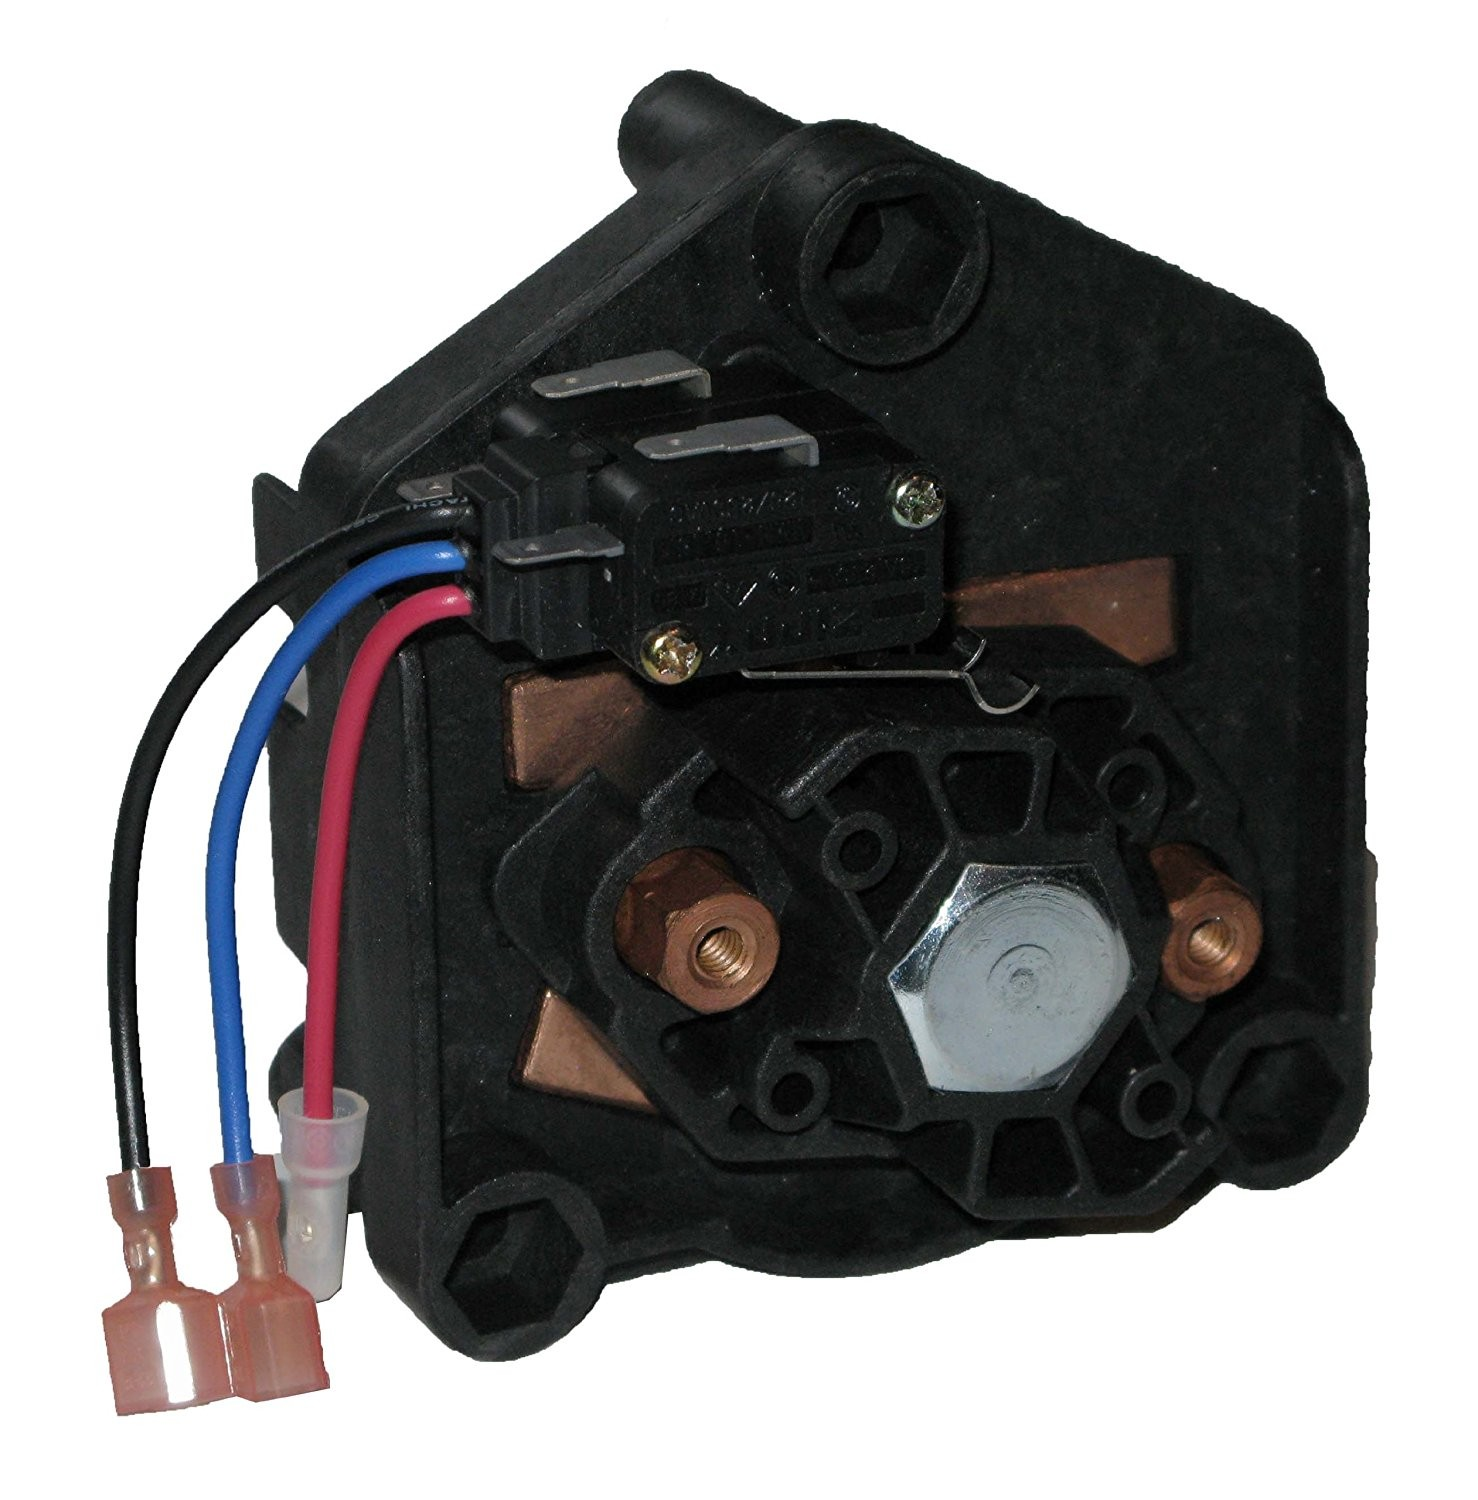 Club Car Ds Parts Diagram Harley Davidson Golf Cart Carburetor Engine Amazon Forward And Reverse Switch Assembly Of